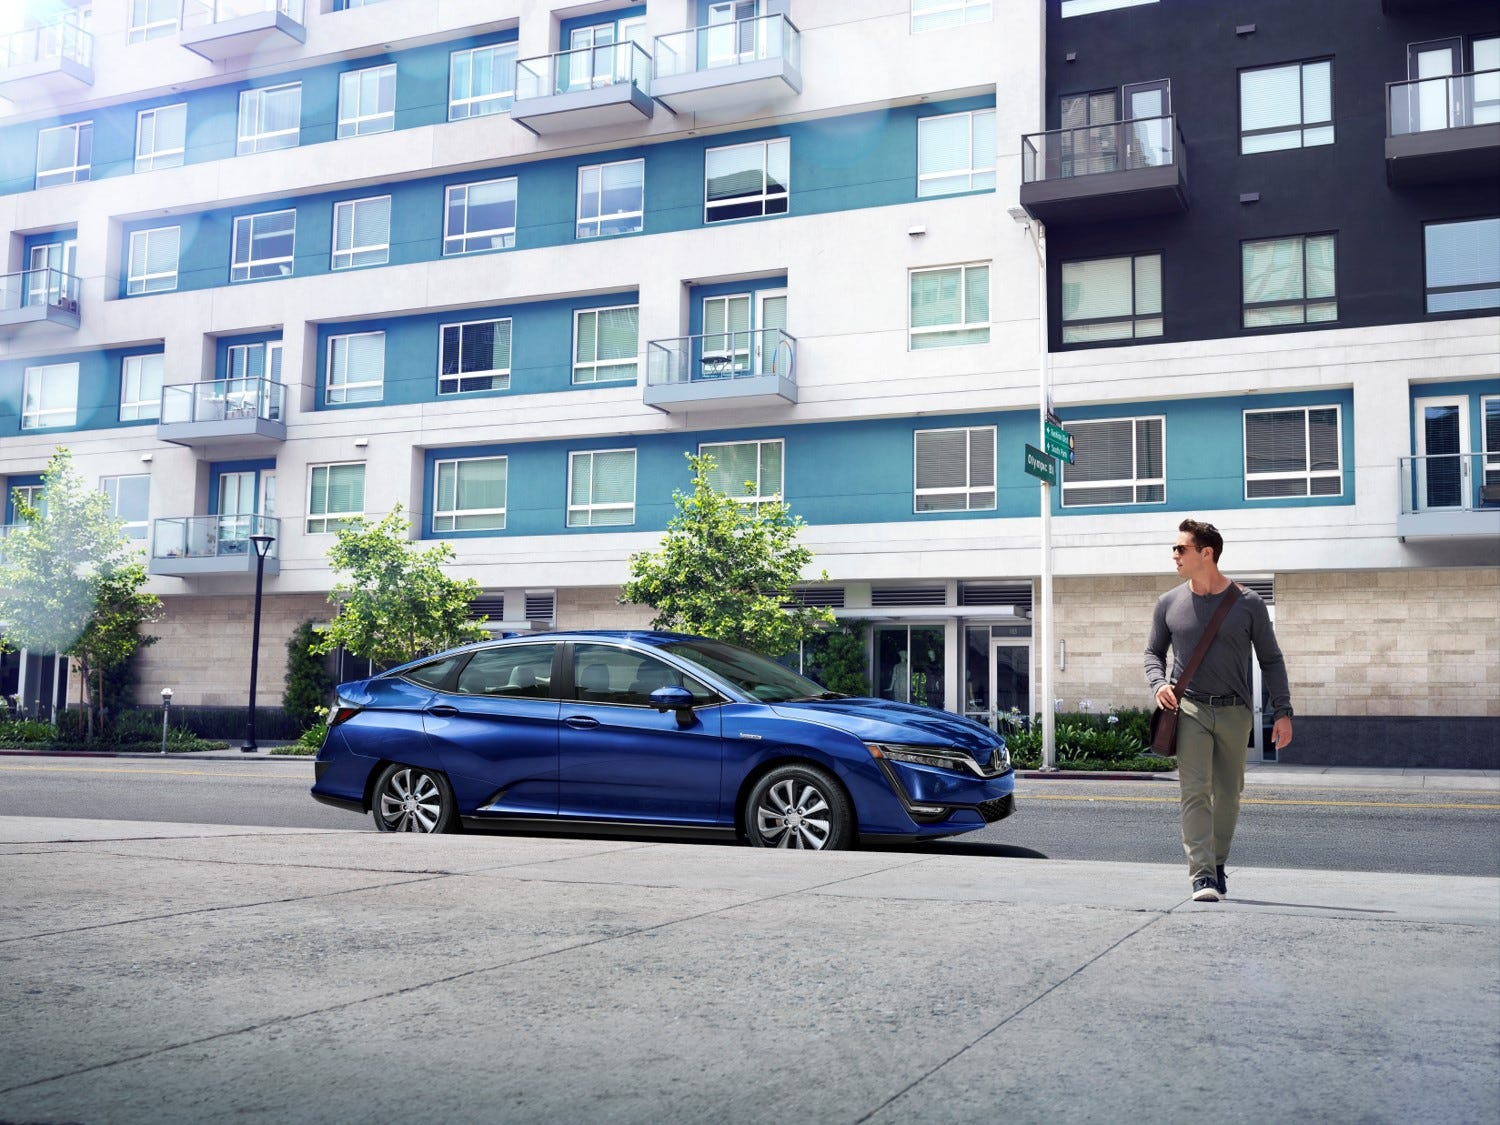 Honda to phase out gas cars, aiming for 100% electric vehicles in North America by 2040